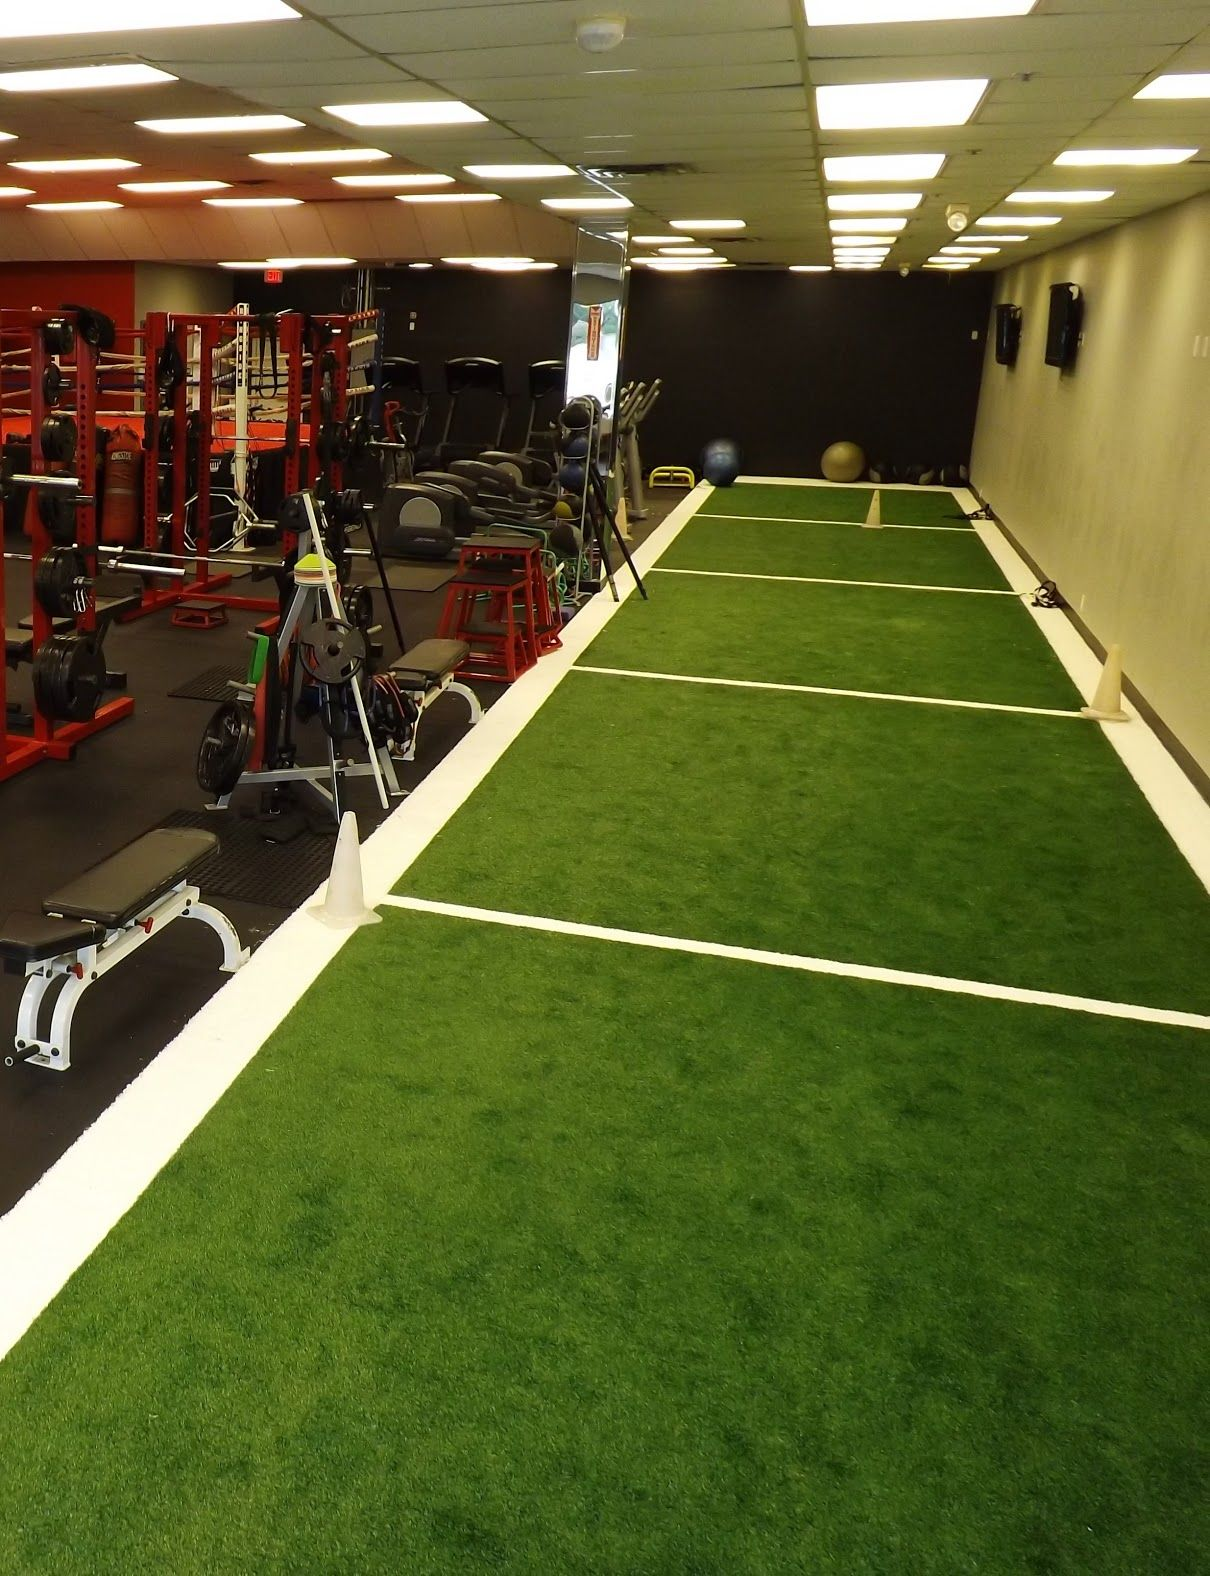 Image result for astro turf gym private gym design in gym